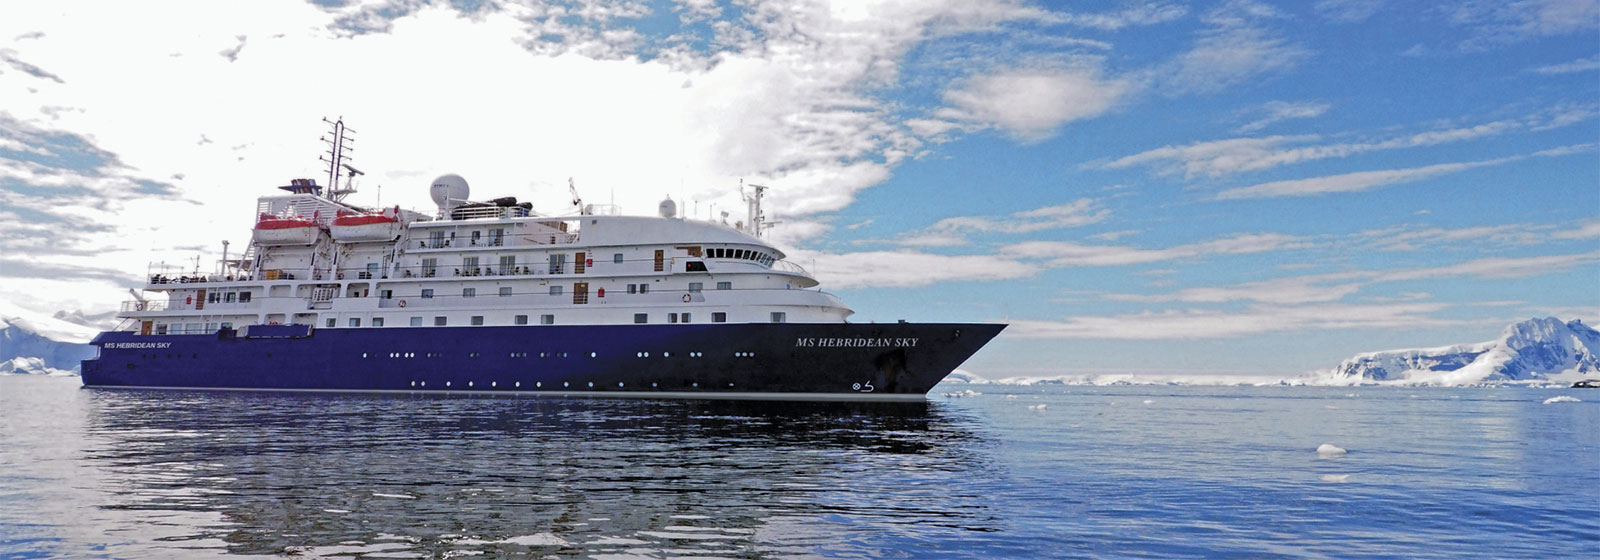 M/V Hebridean Sky (formerly Sea Explorer)